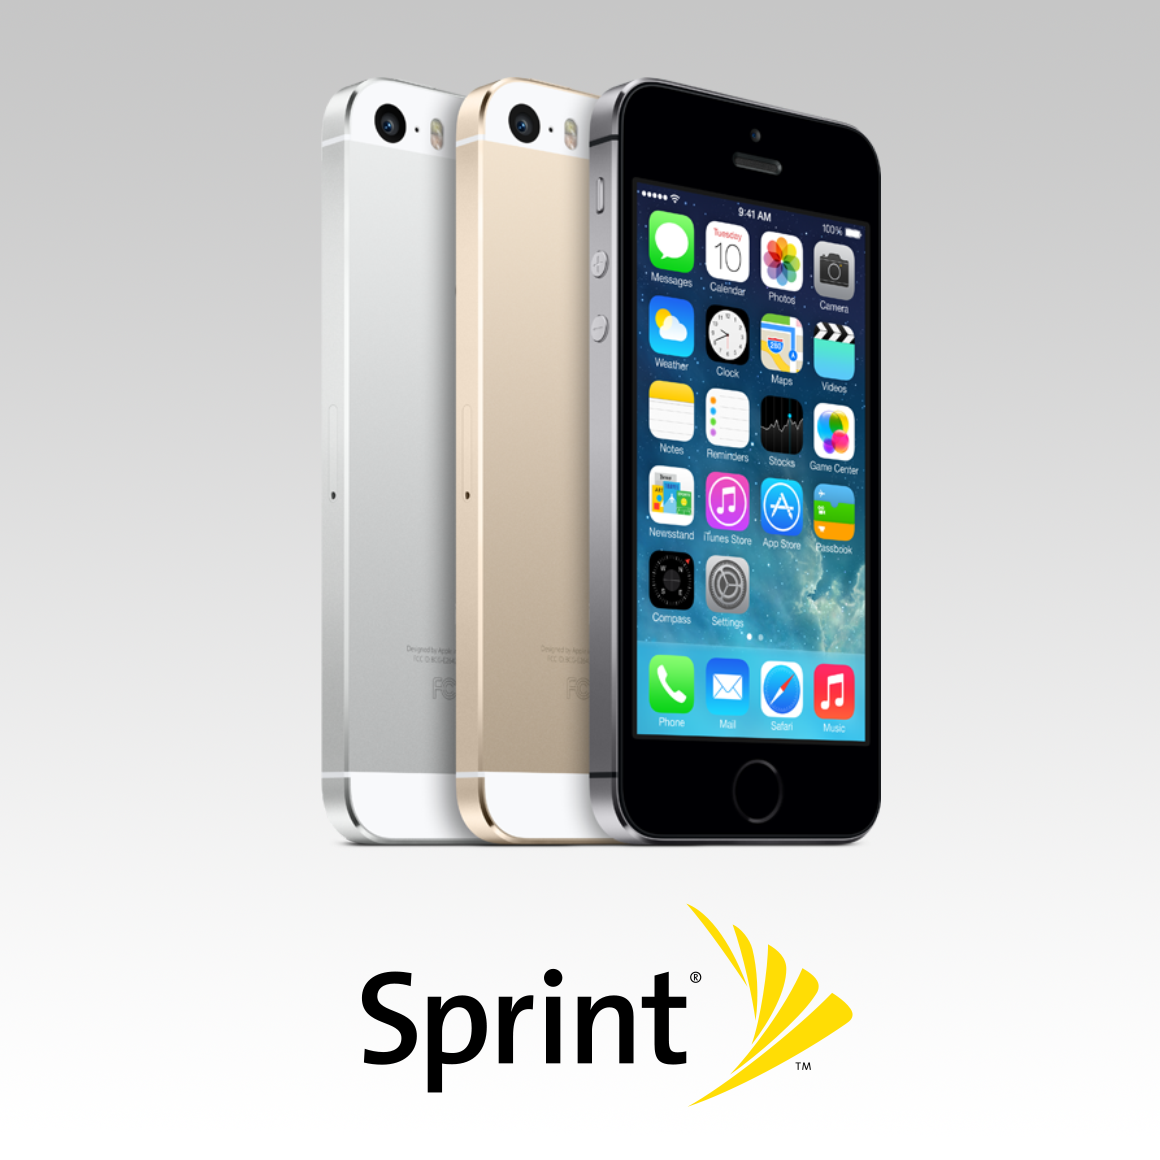 Apple iphone 5s sprint model cdma technak com buy used iphones